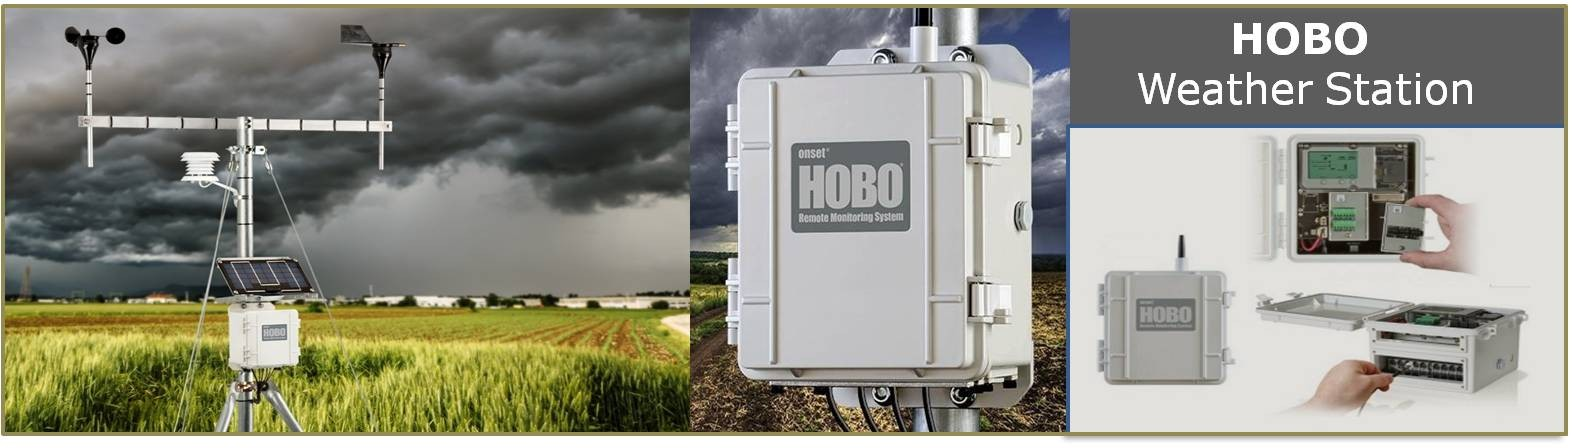 RX3000-Weather-Station-HOBO